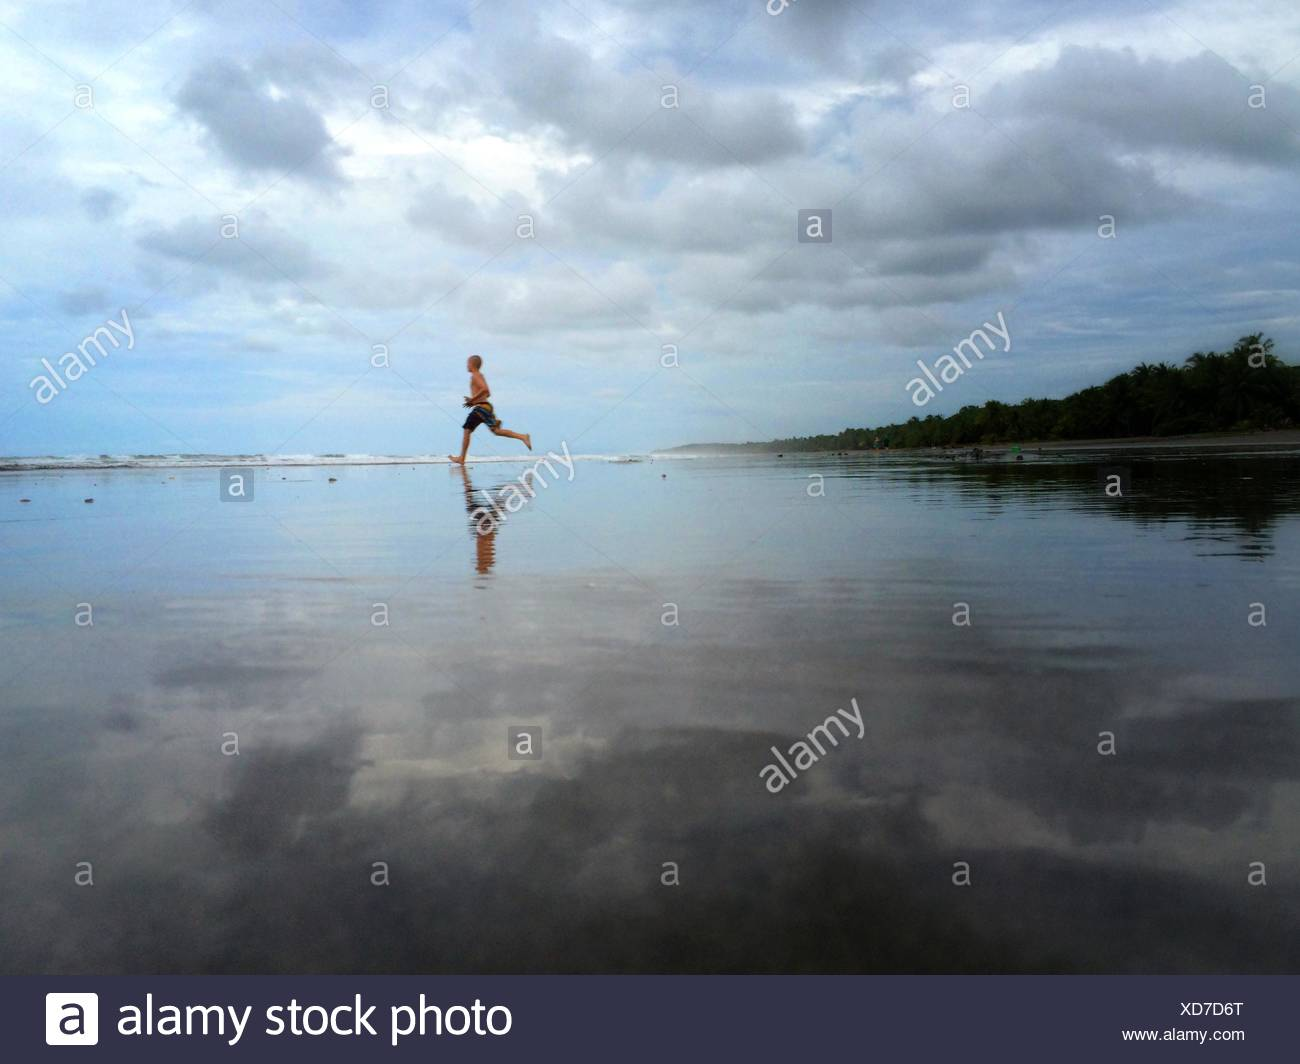 Boy running on beach Photo Stock